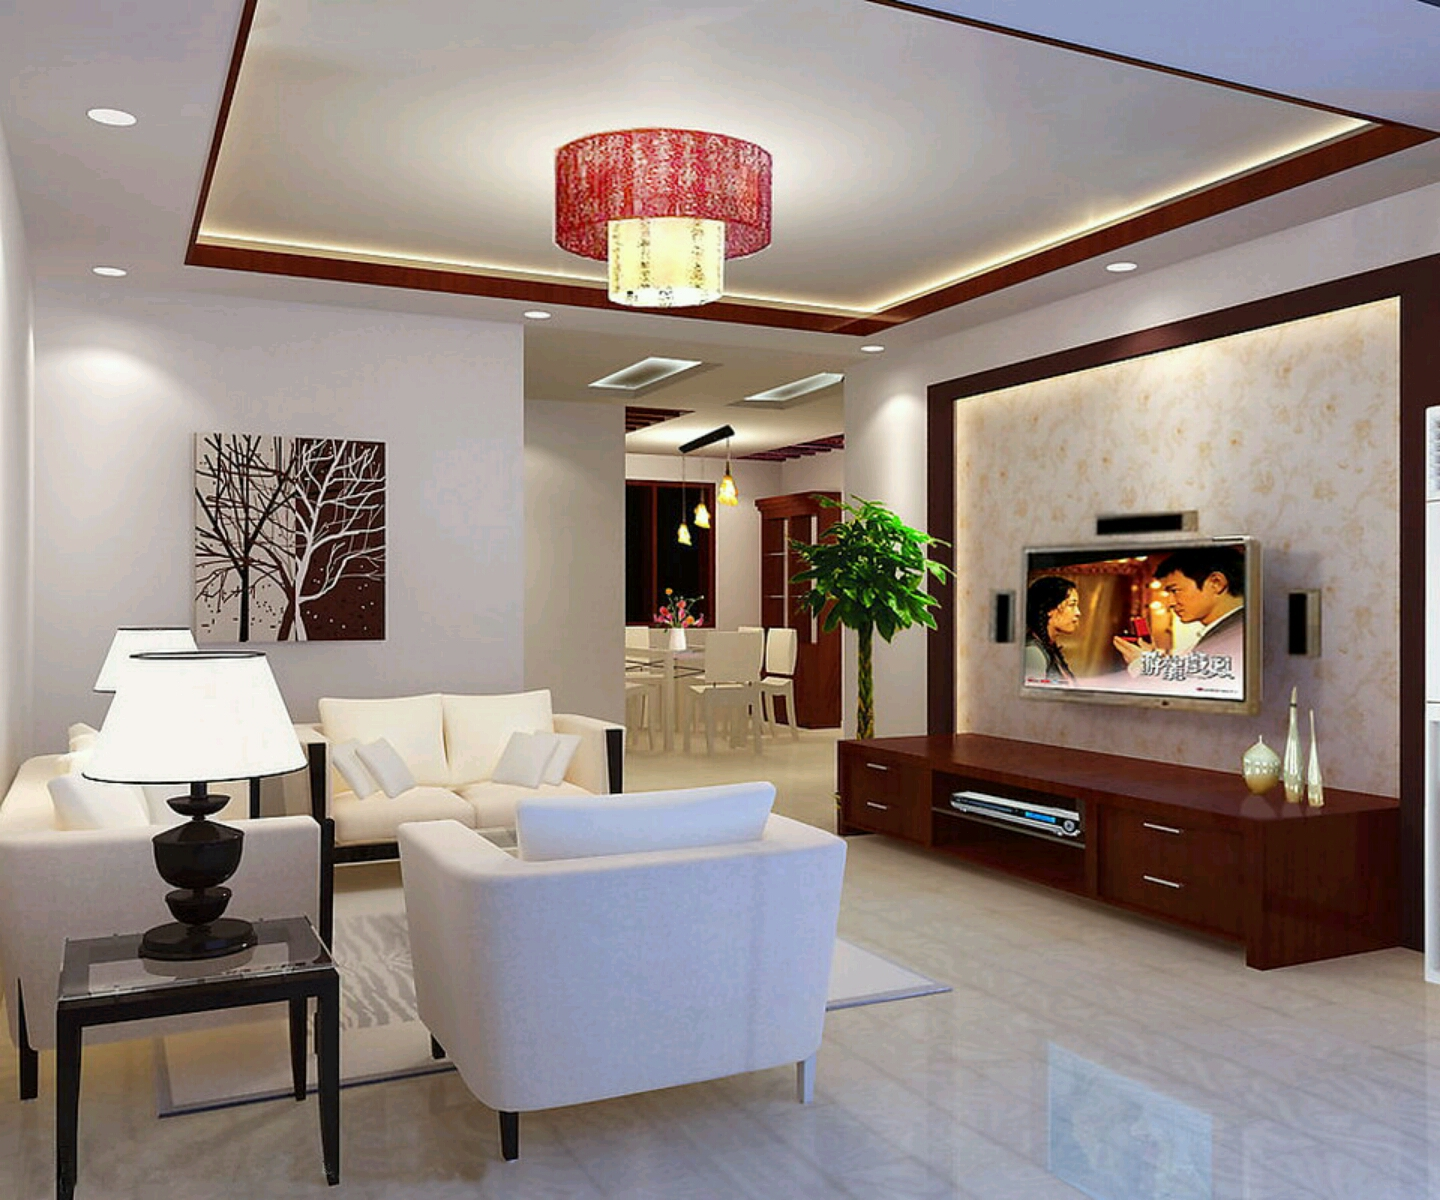 Modern interior decoration living rooms ceiling designs for New house interior ideas